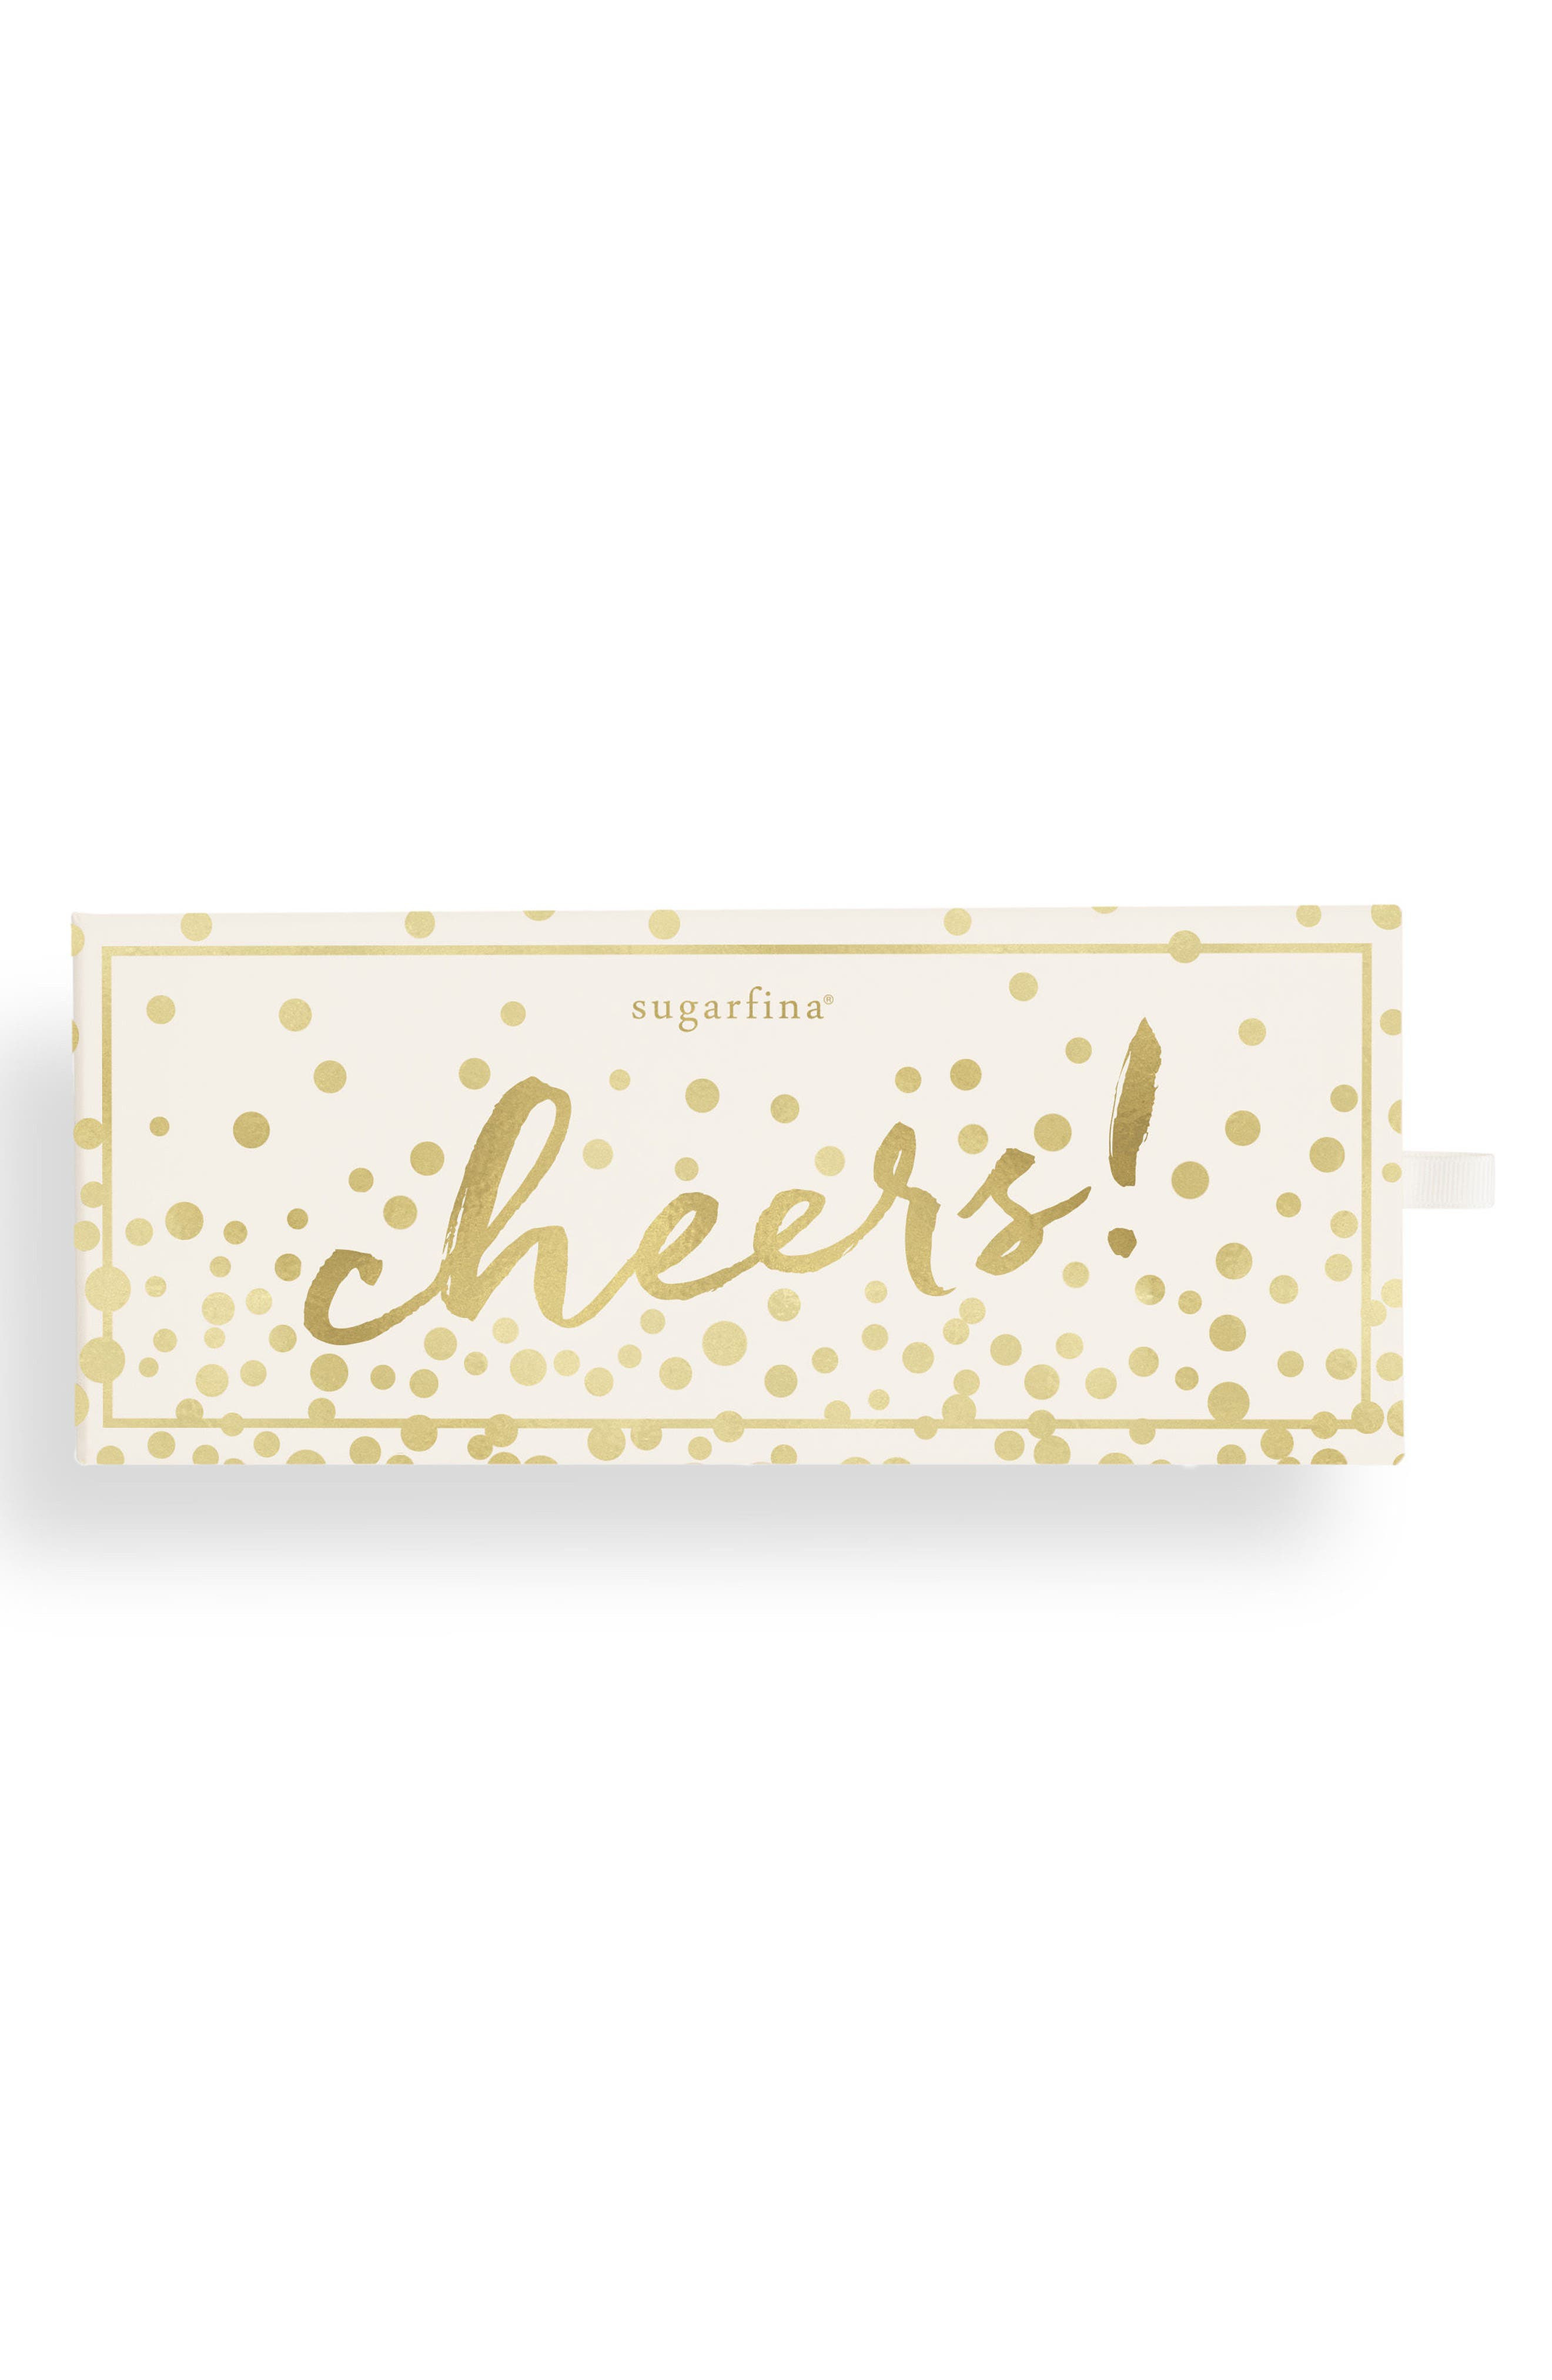 Cheers 3-Piece Candy Bento Box,                         Main,                         color, White